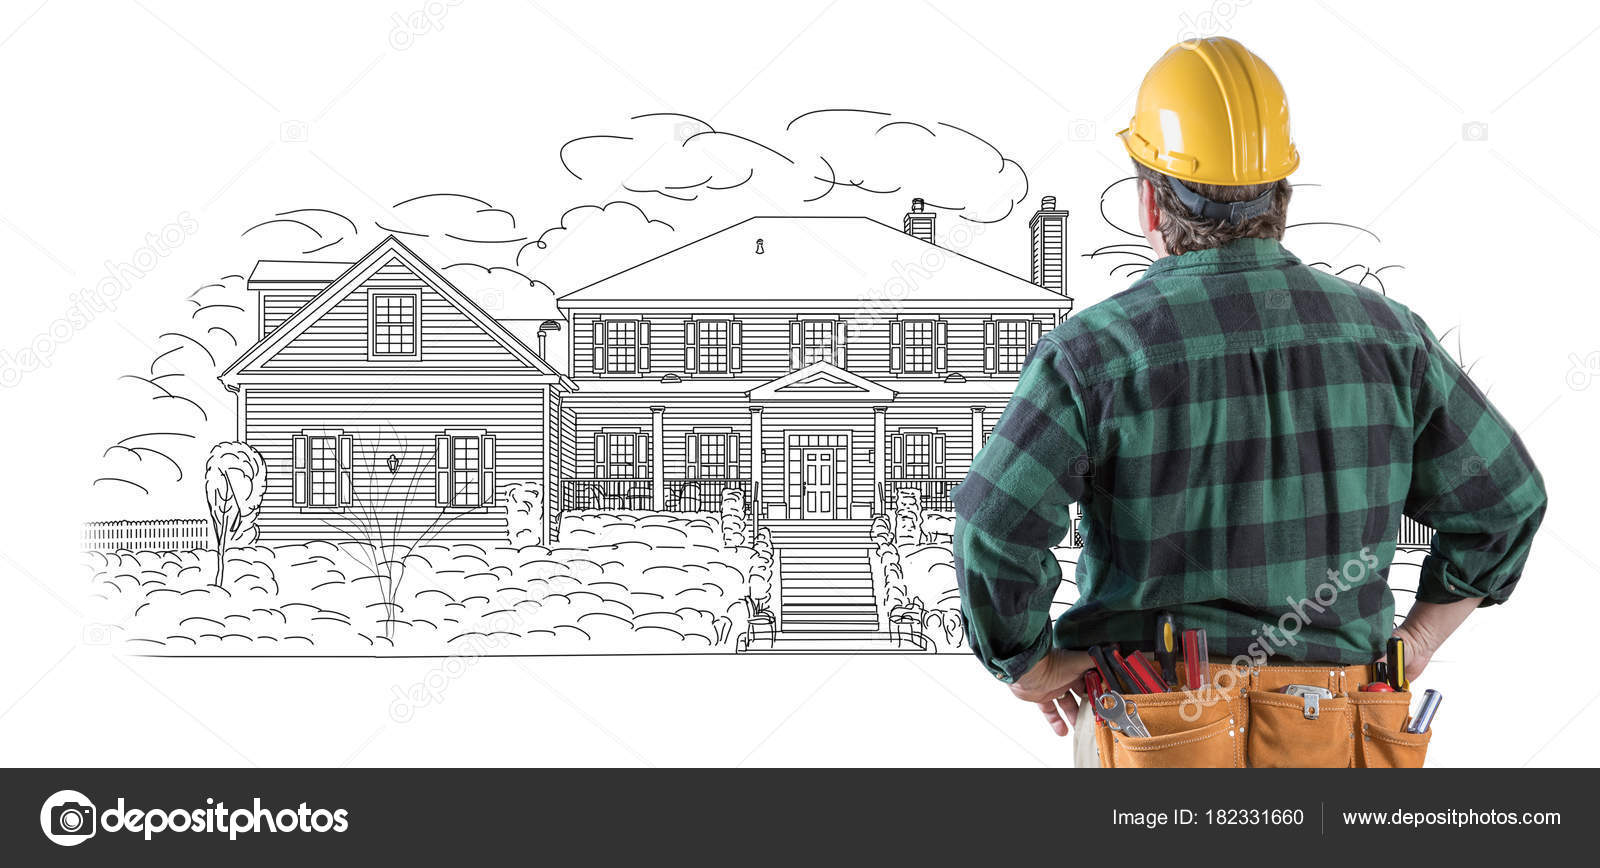 1600x868 Male Contractor With Hard Hat And Tool Belt Looking At Custom